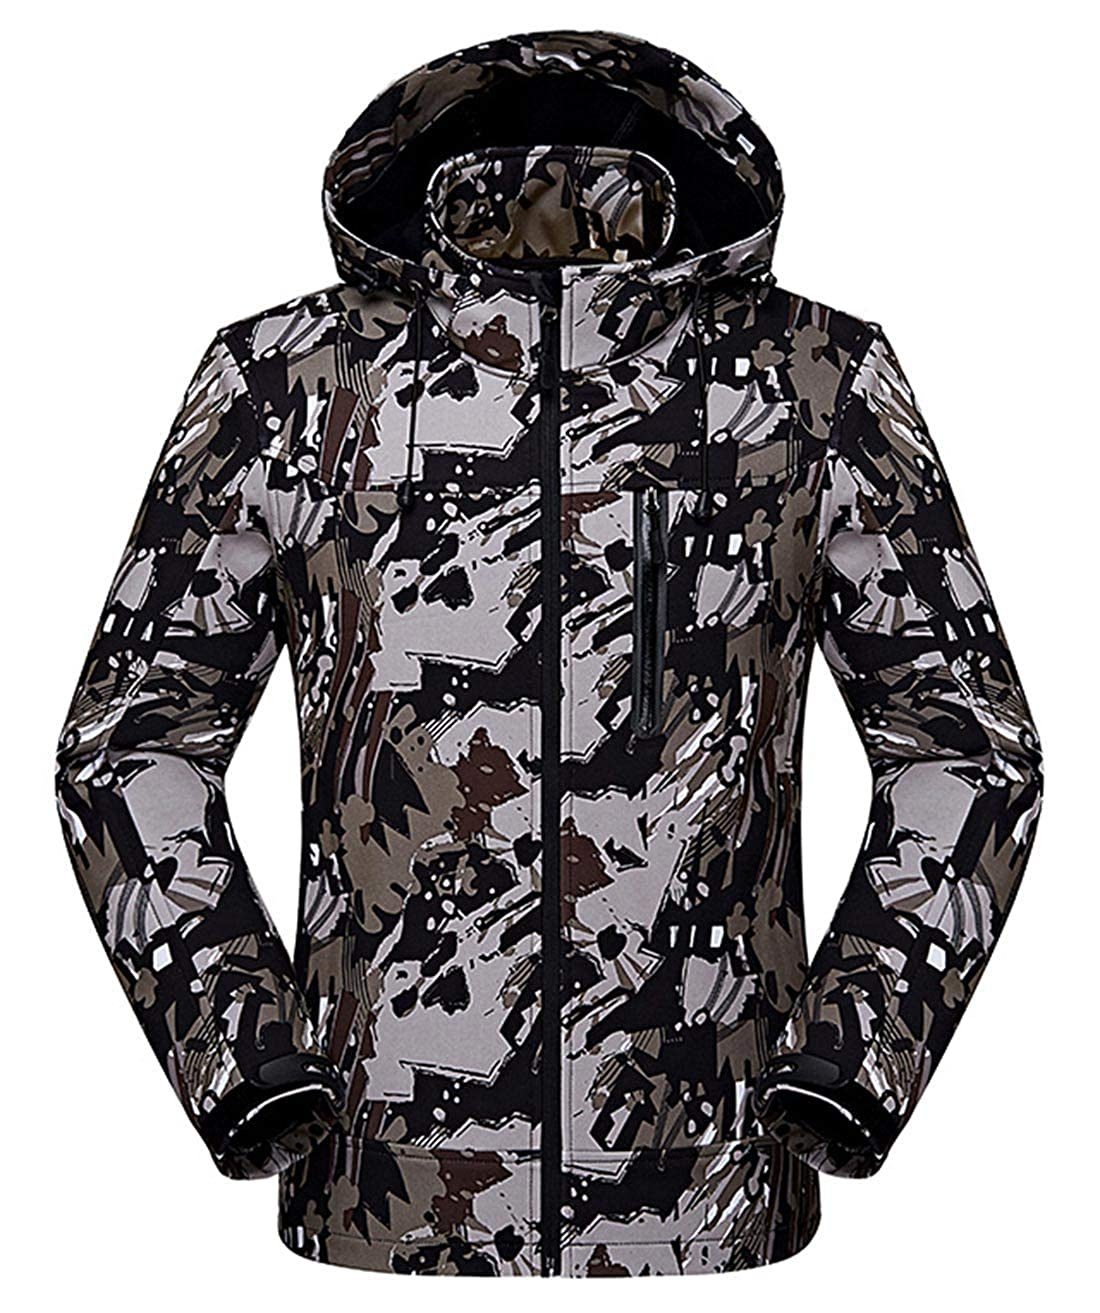 AIEOE Men's Hooded Windbreaker Windproof Waterproof Sportswear Camouflage Jacket